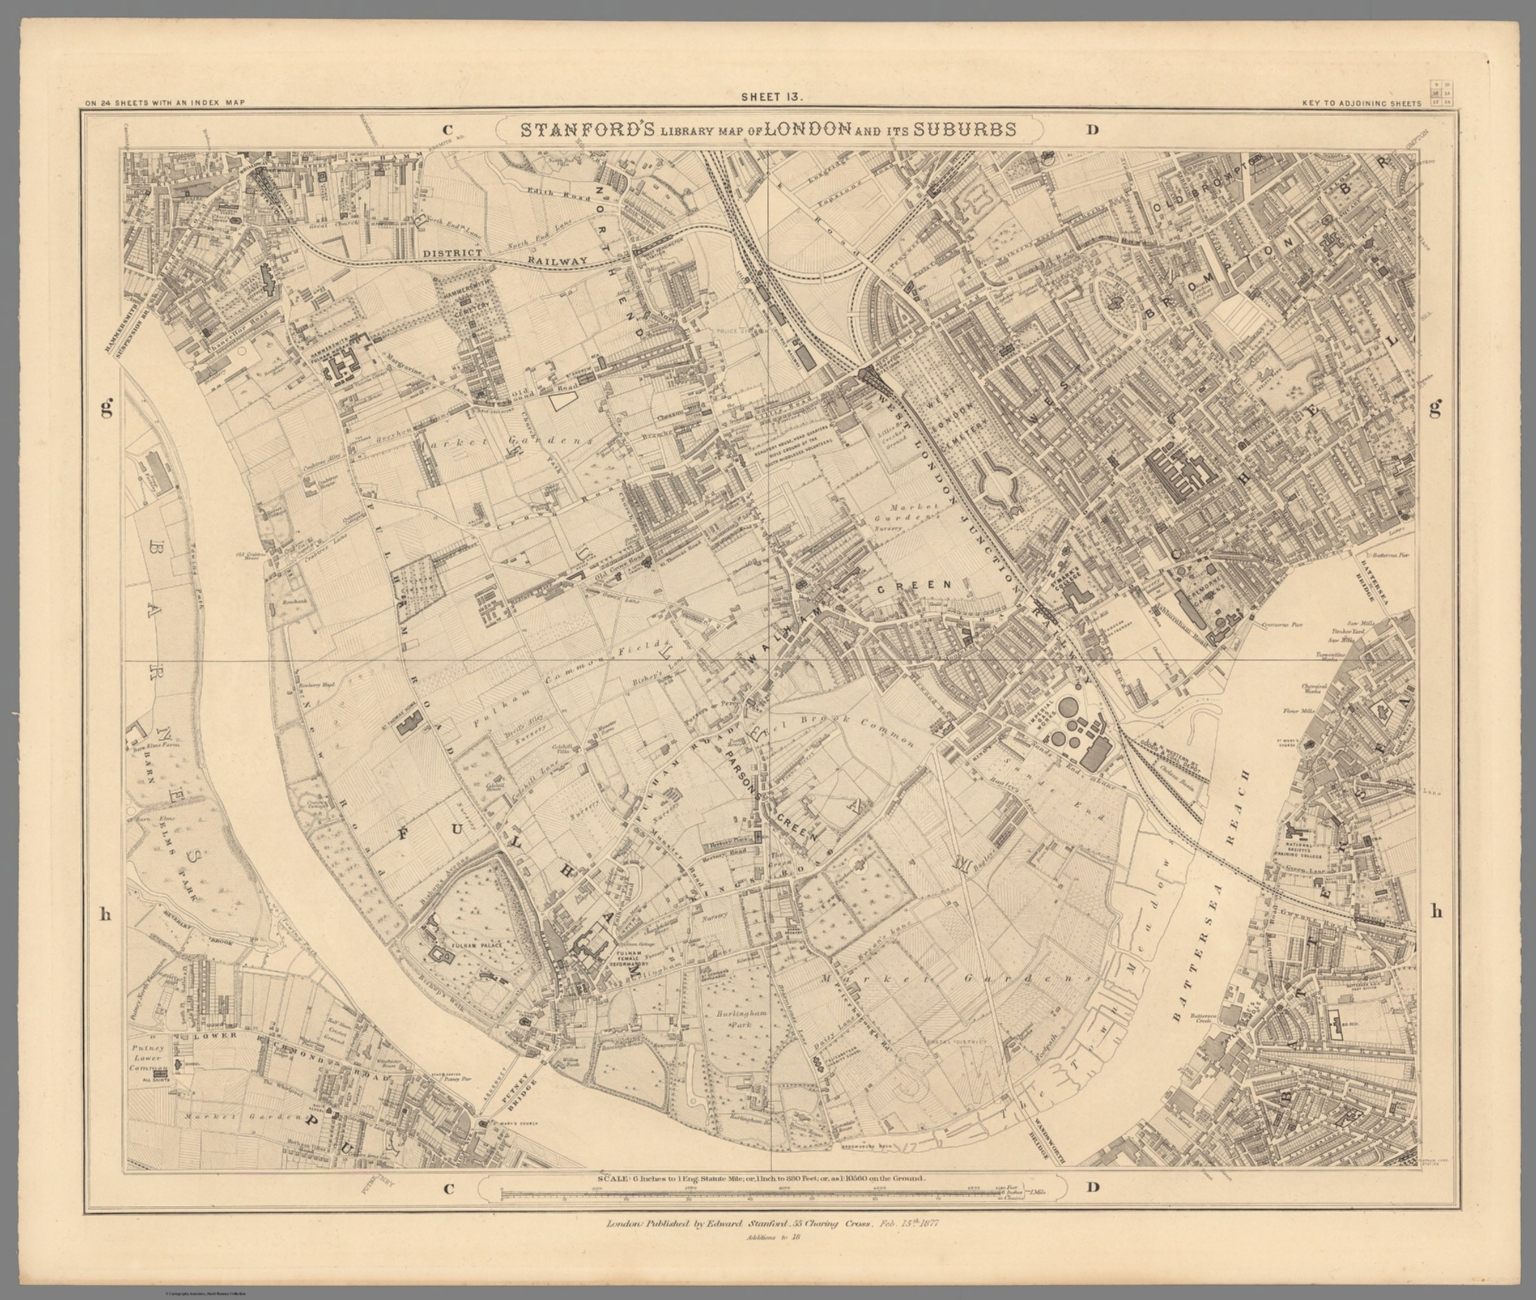 Sheet 13. Stanford's Library Map of London and it's Suburbs.